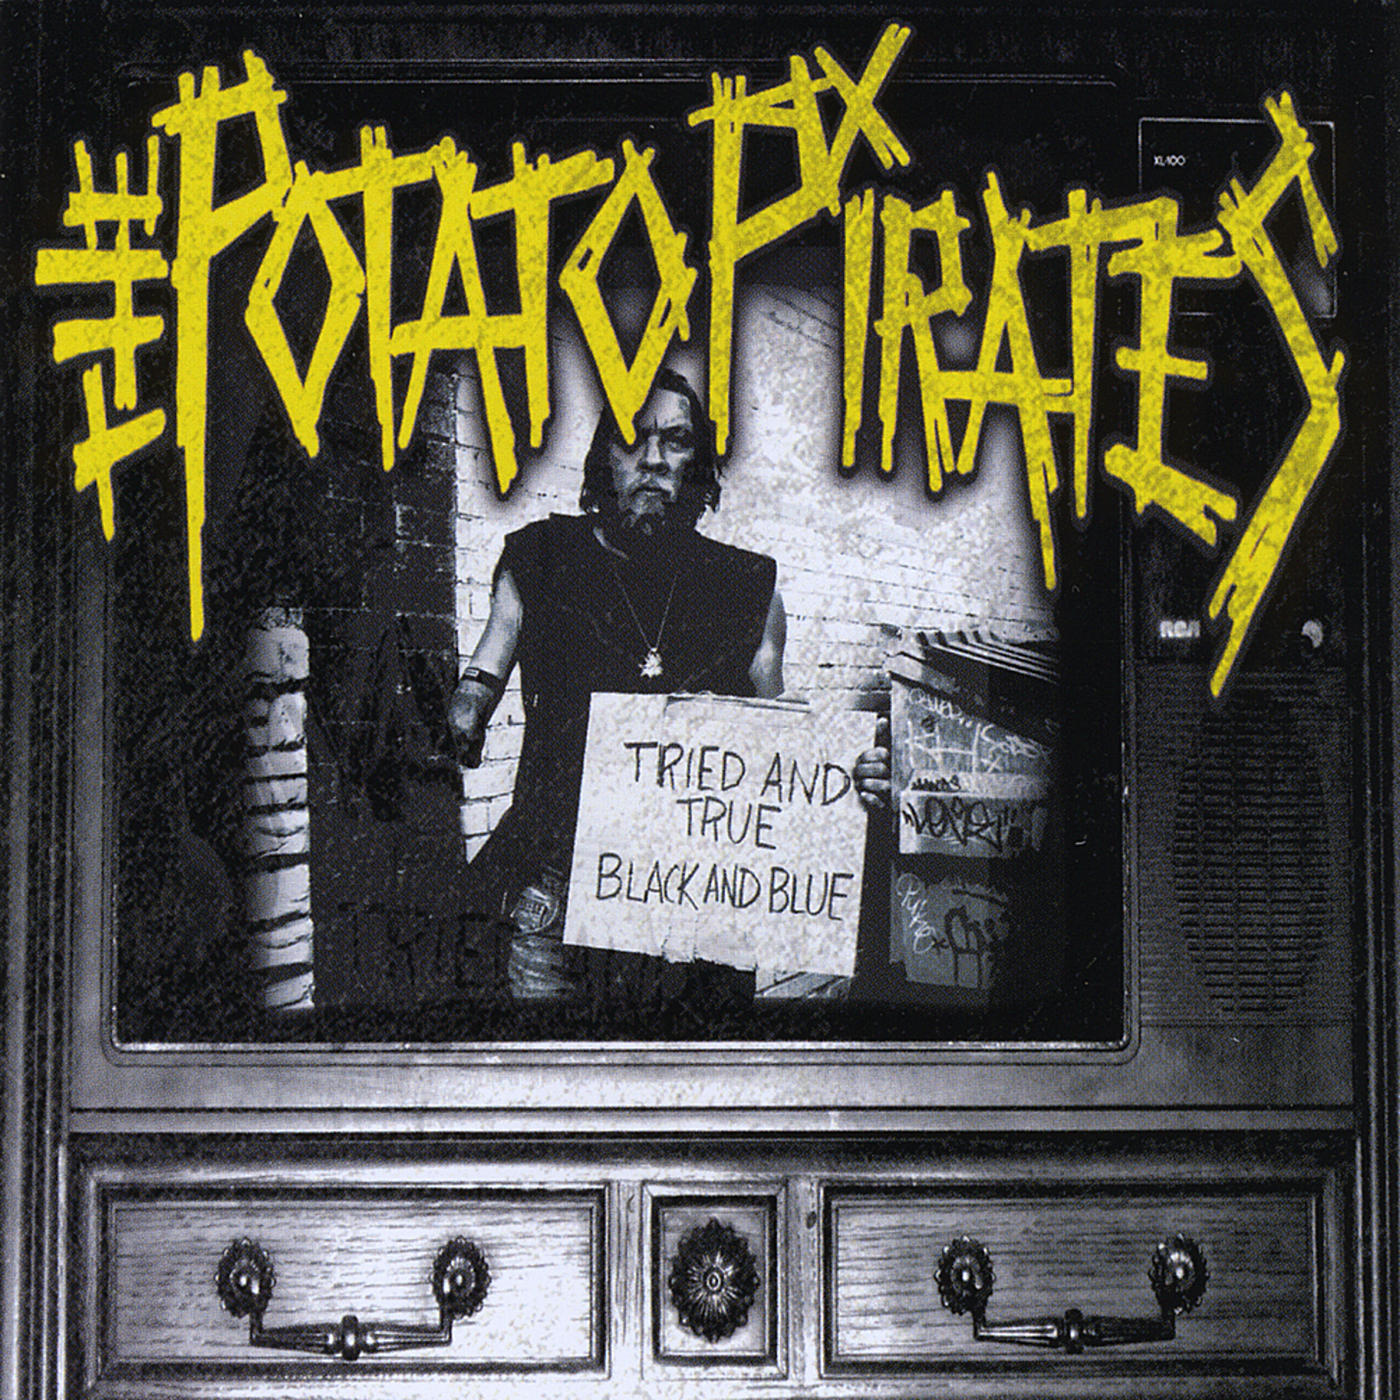 The Potato Pirates - Tried And True, Black And Blue (2011)